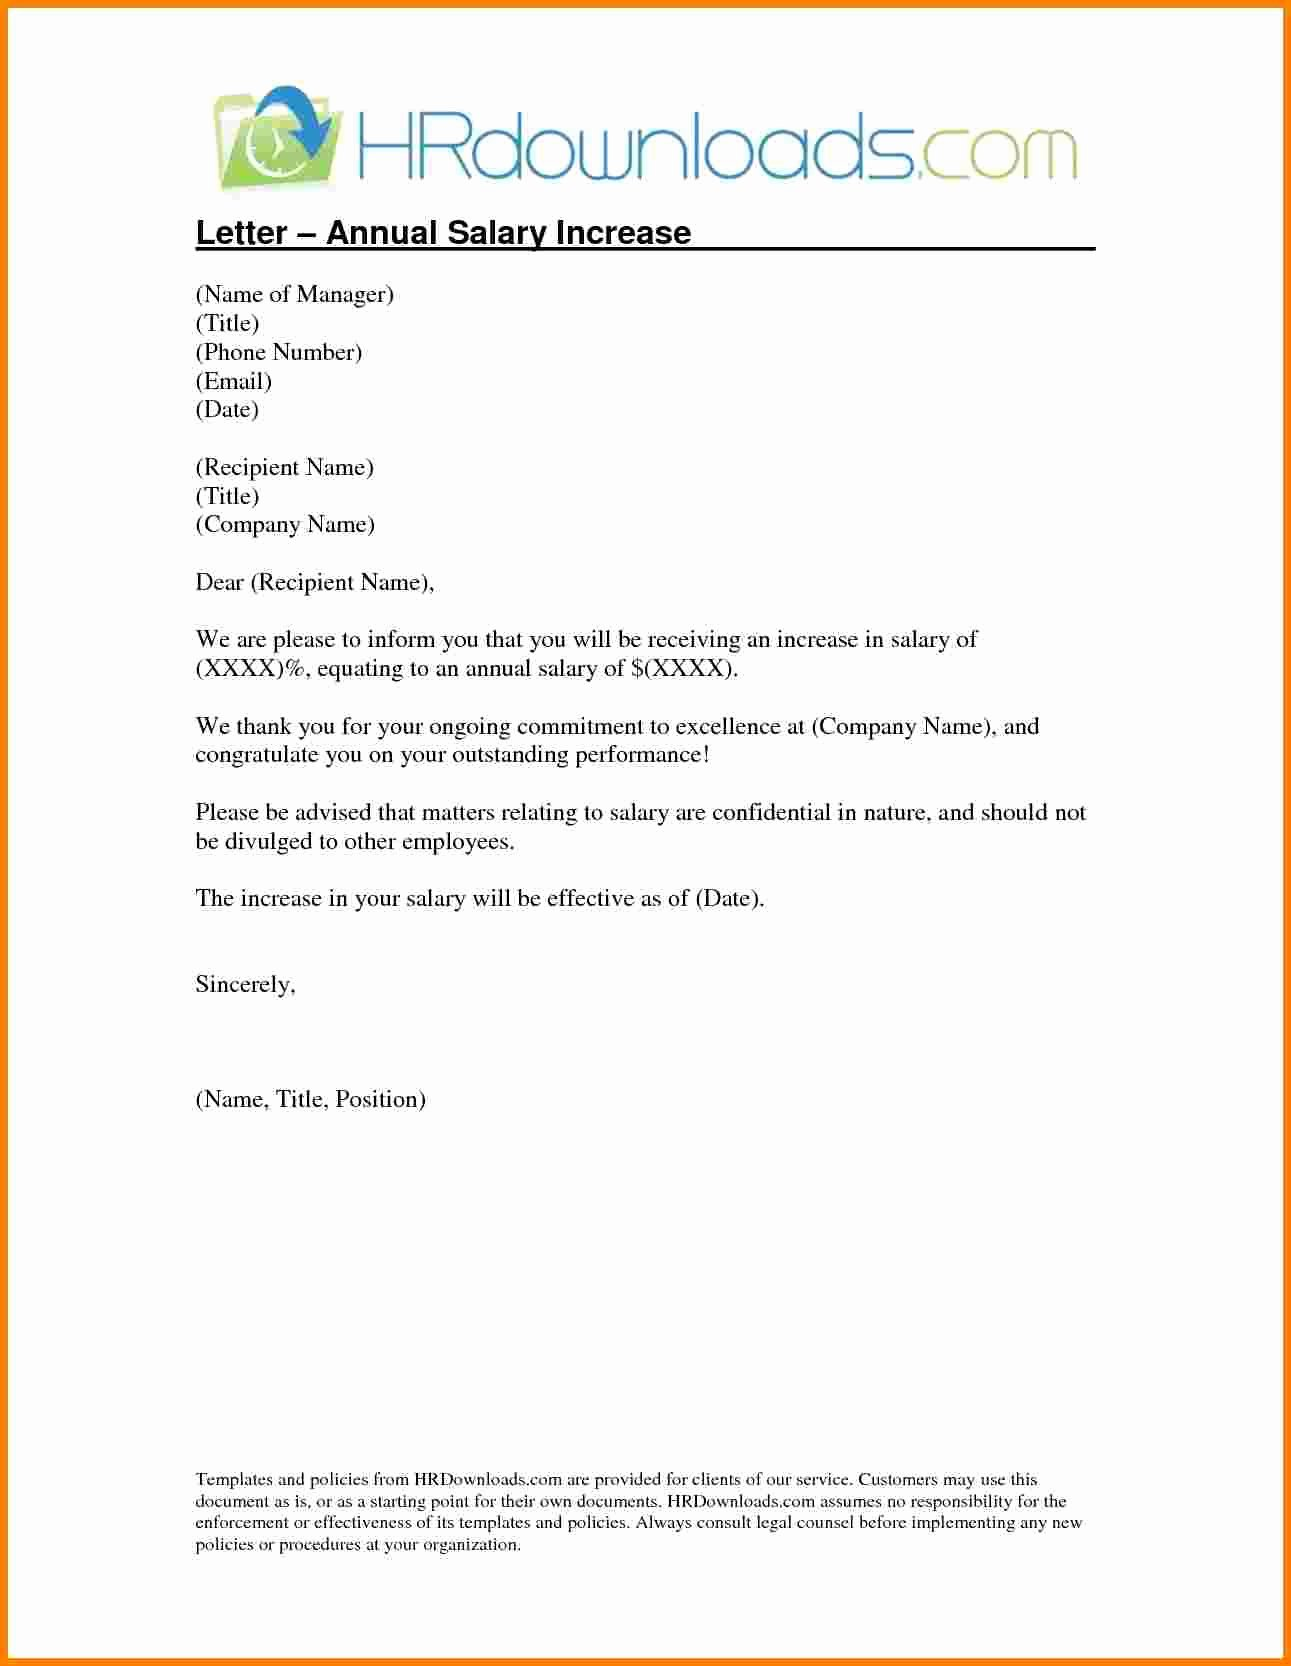 Sample Pay Increase Letter to Employee Elegant 8 Sample Salary Increase Letter to Employer